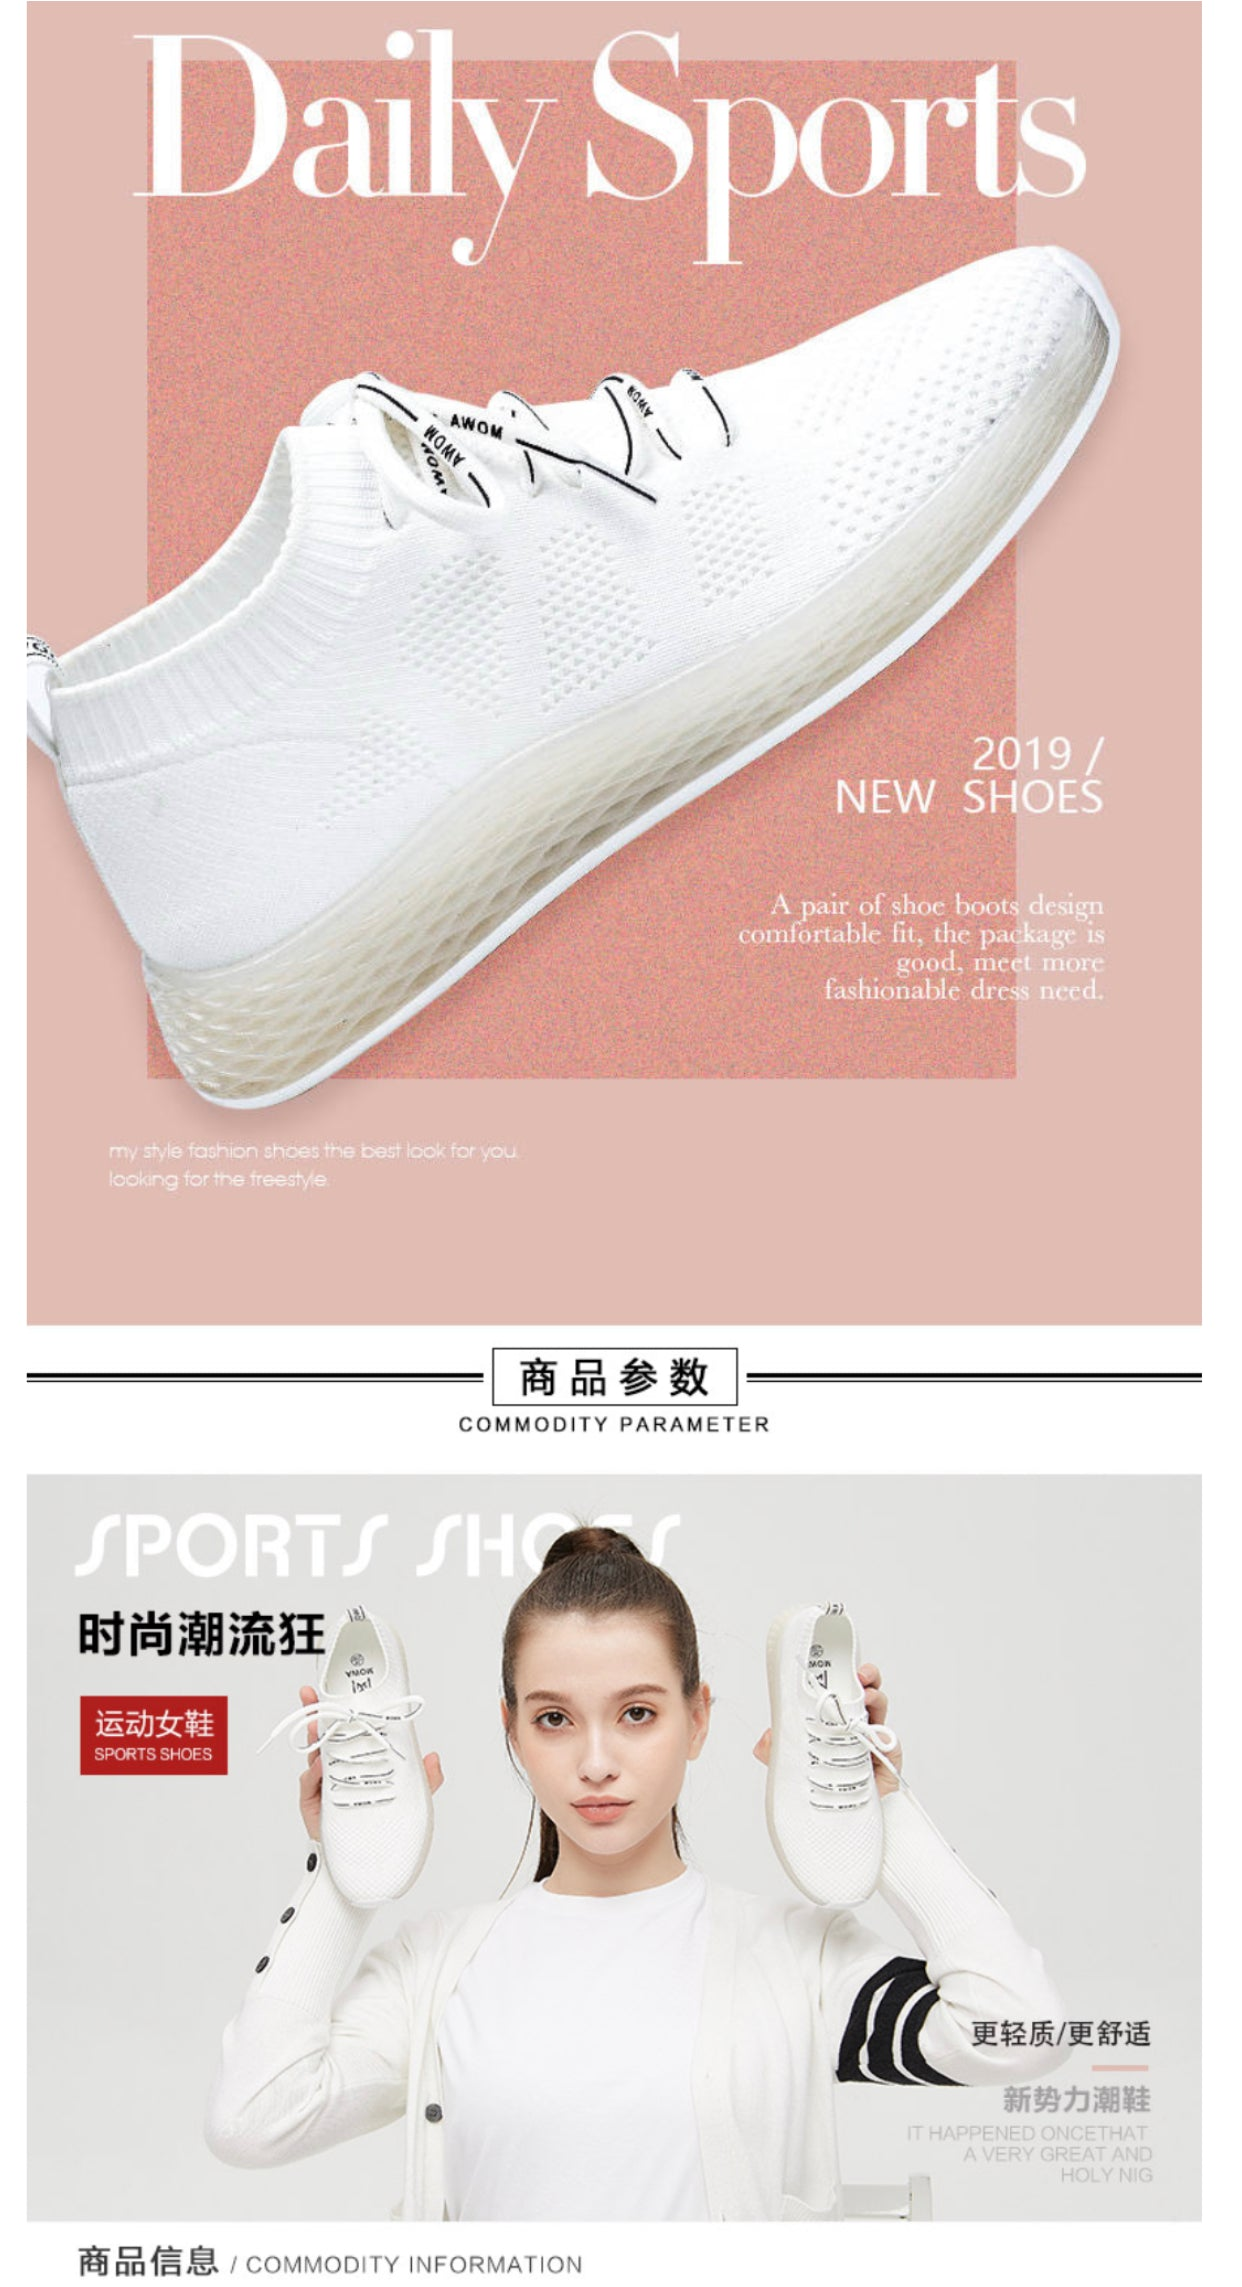 Daily Sports Women's Shoes